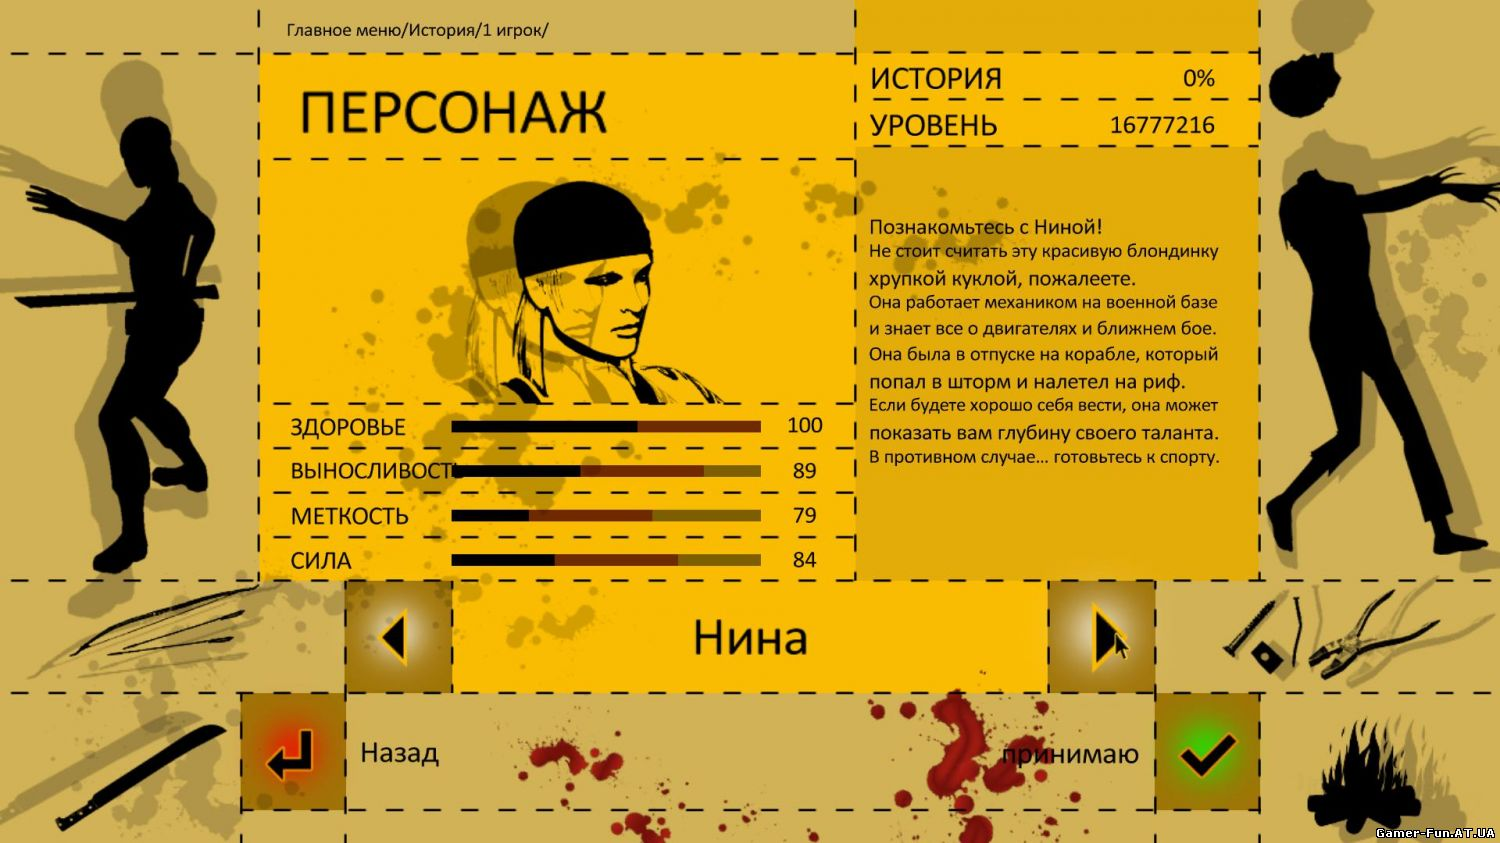 How To Survive [Update 7] (2013) Русская версия [Steam-Rip], скриншоты How To Survive [Update 7] (2013) Русская версия [Steam-Rip], скачать How To Survive [Update 7] (2013) Русская версия [Steam-Rip], картинки How To Survive [Update 7] (2013) Русская версия [Steam-Rip], постер How To Survive [Update 7] (2013) Русская версия [Steam-Rip]